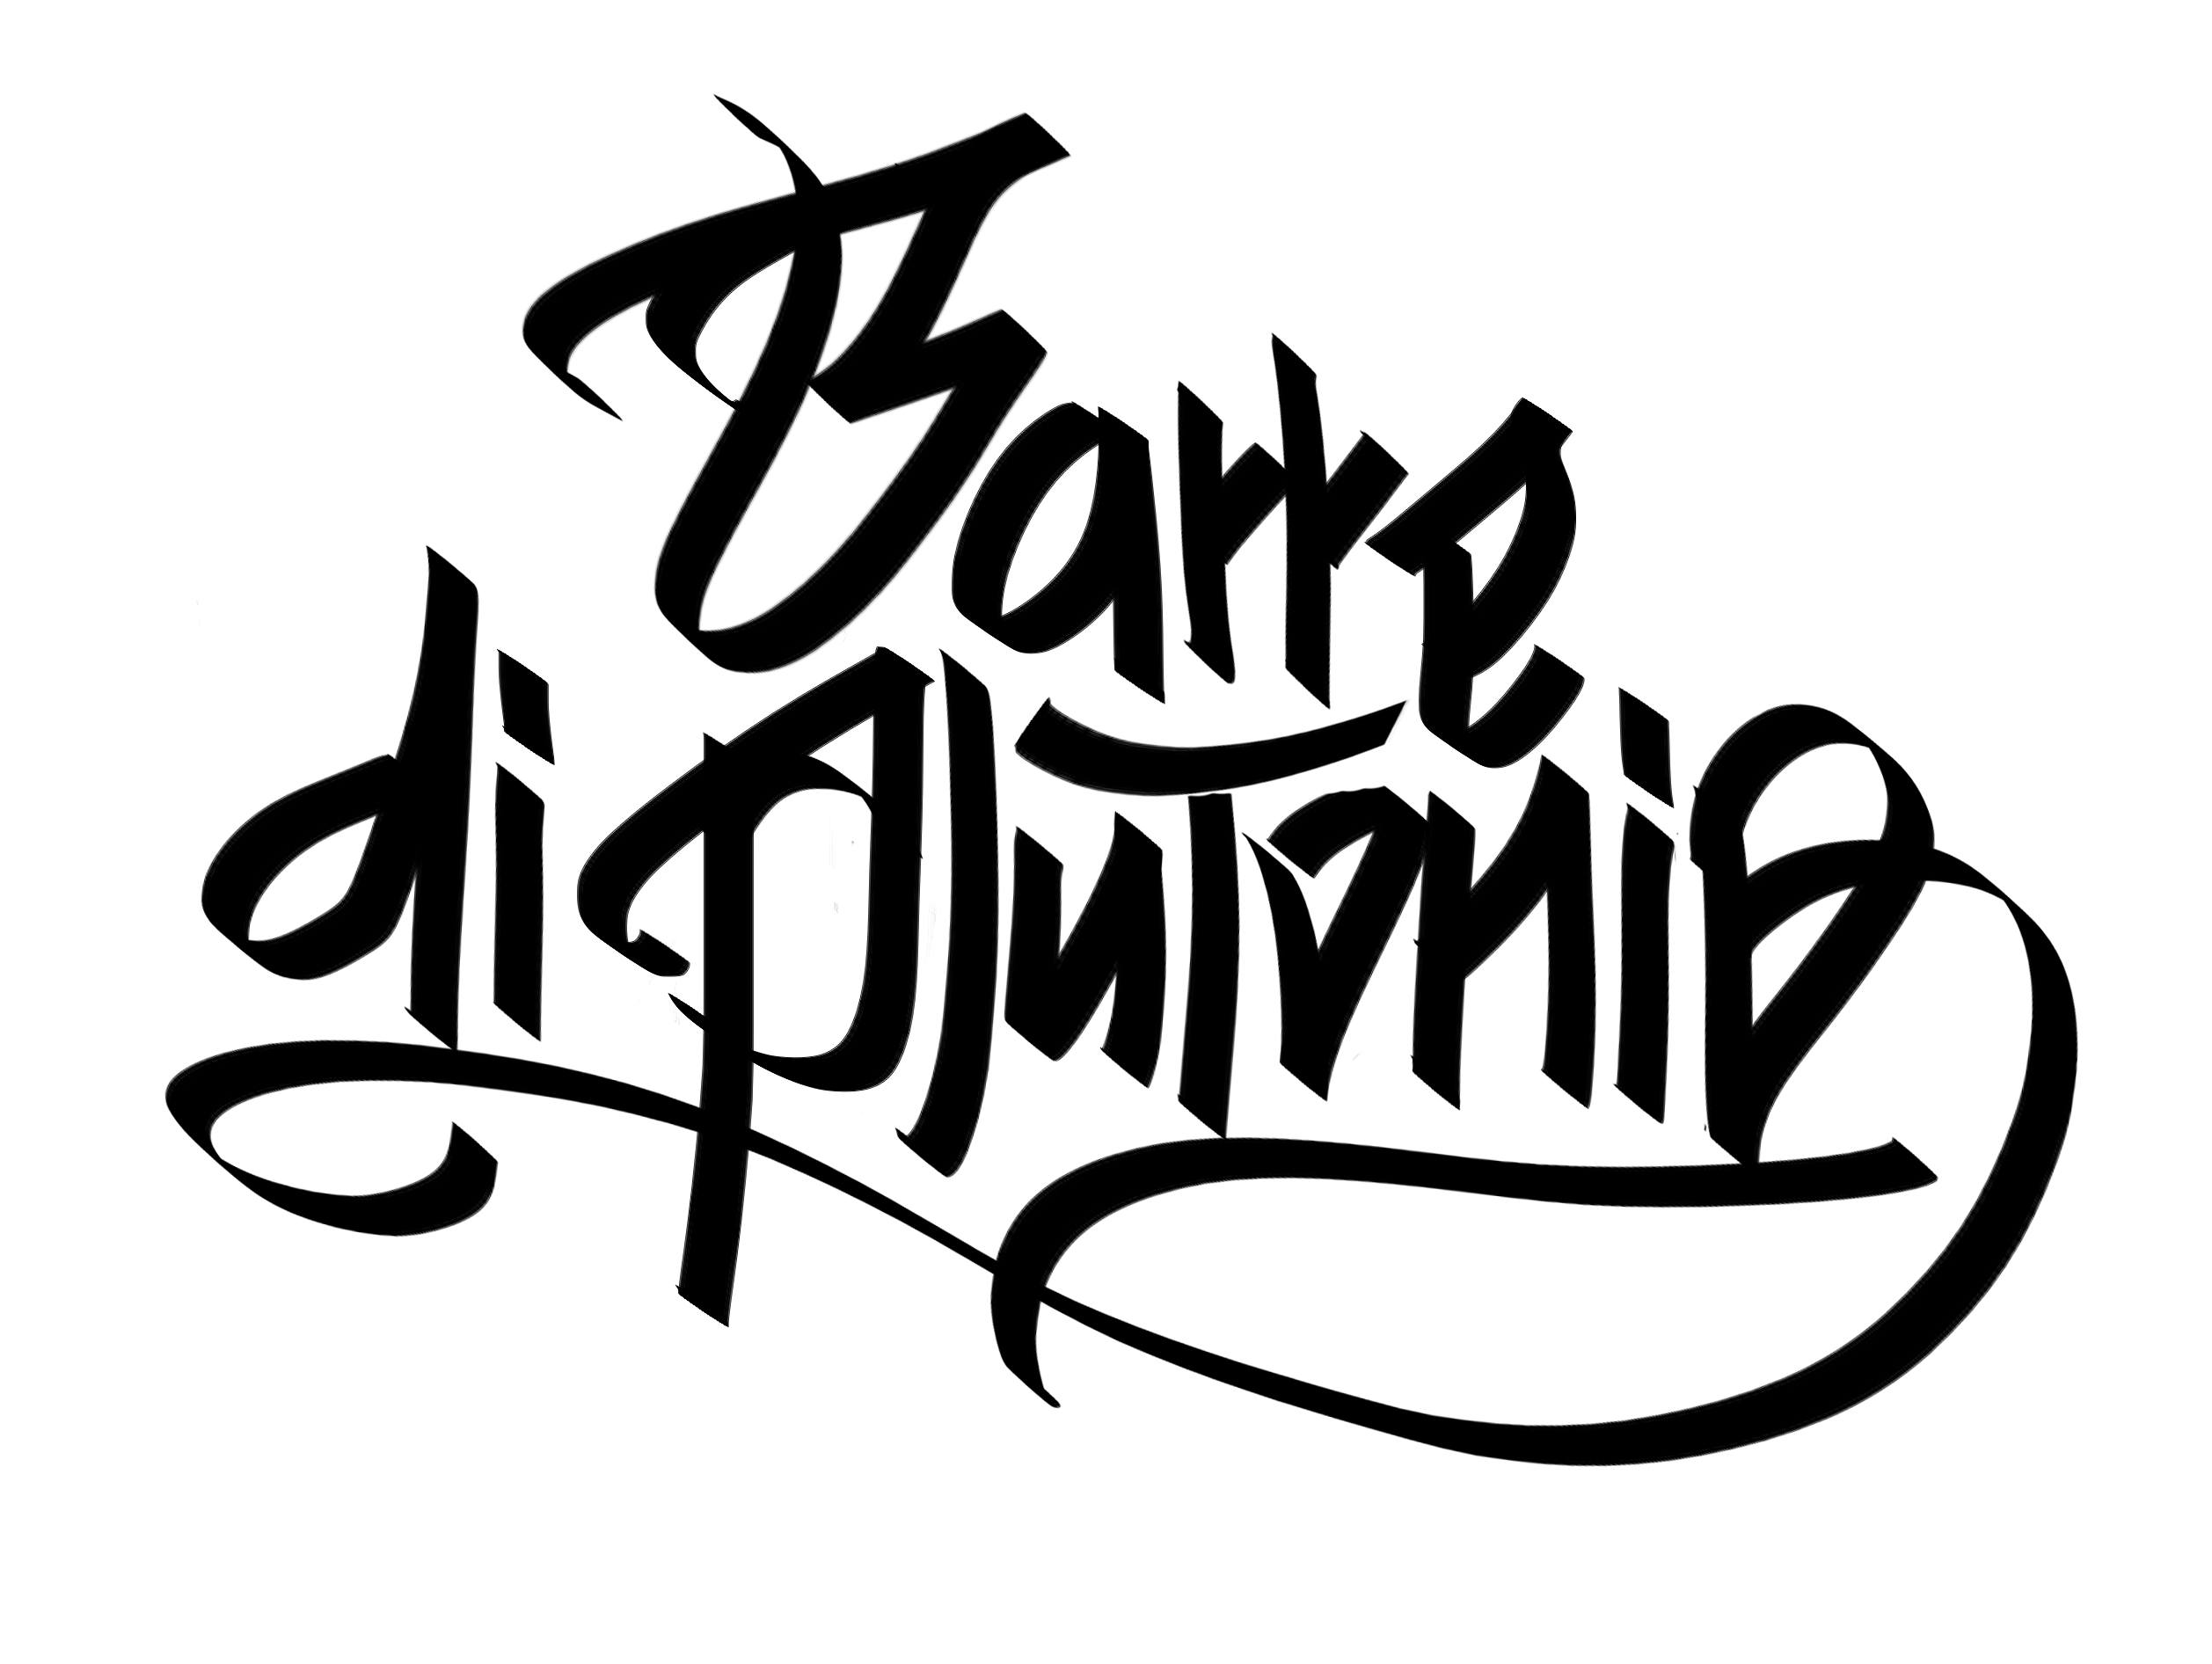 Barre Di Plutonio